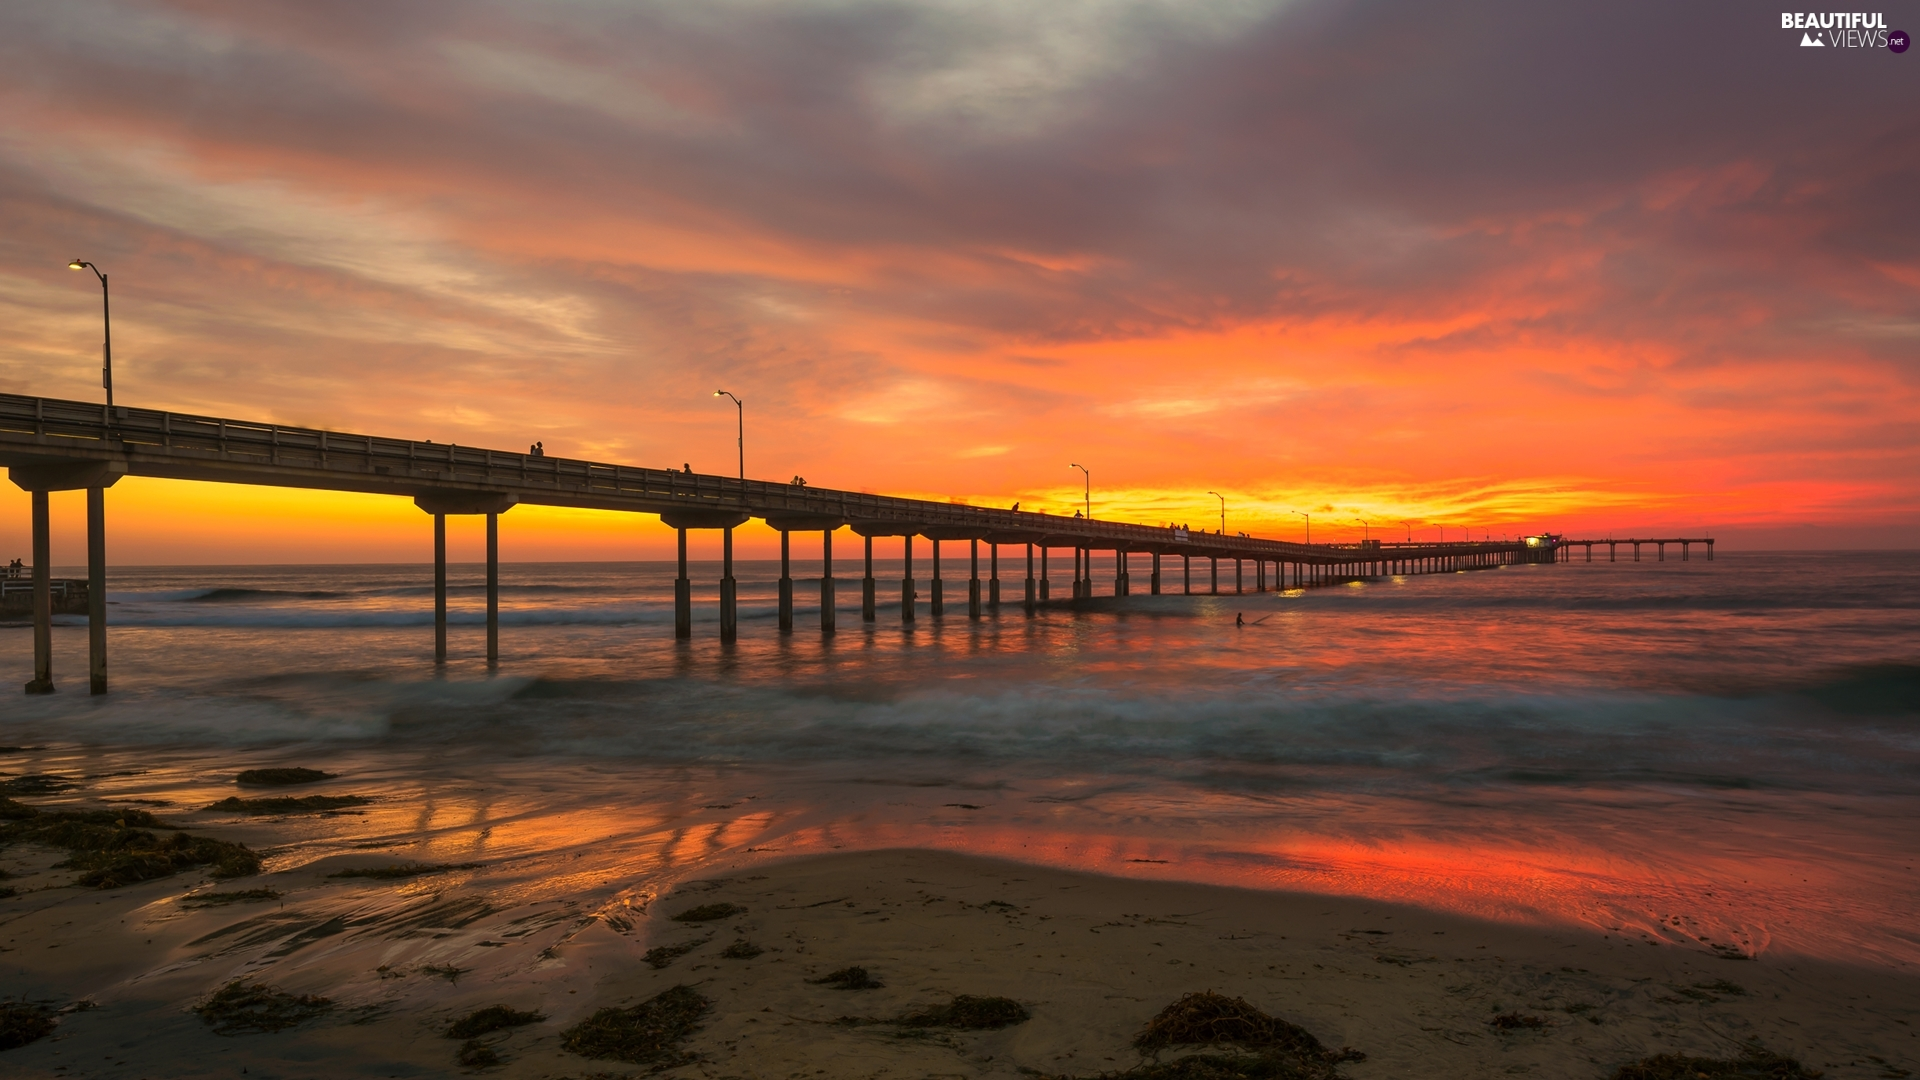 Great Sunsets, sea, color, Sky, clouds, pier